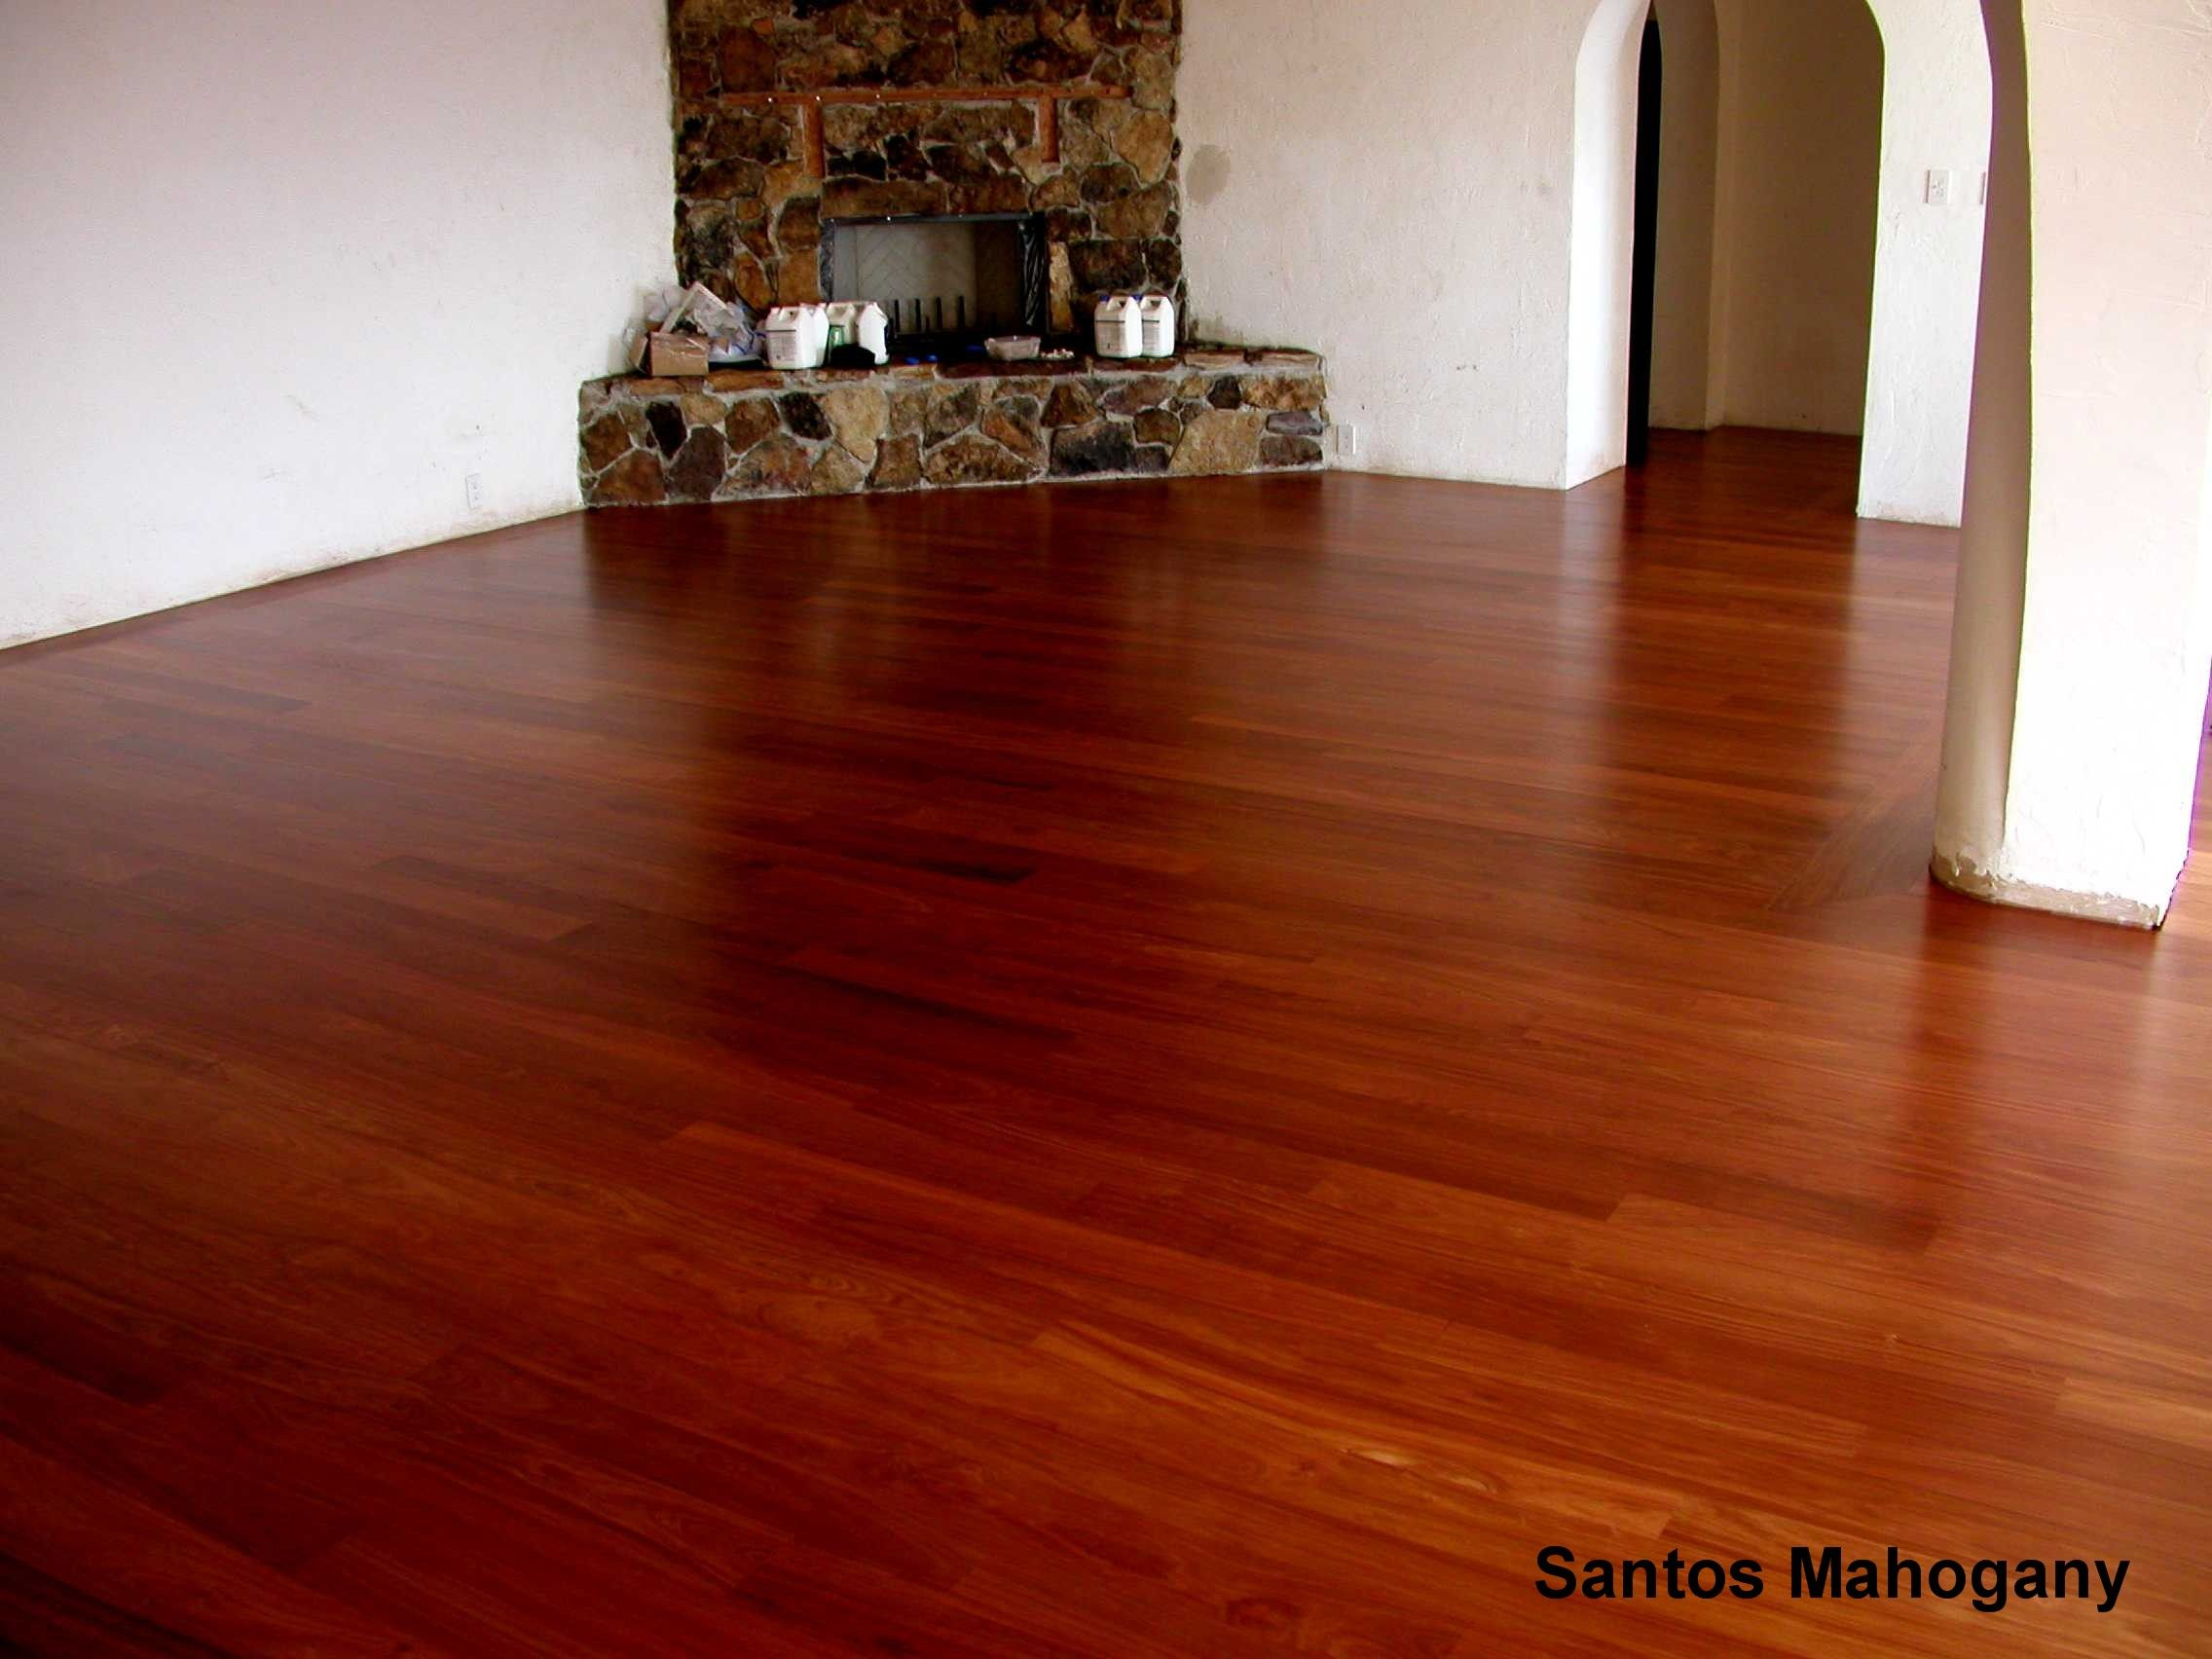 Santos Mahogany floors are timeless